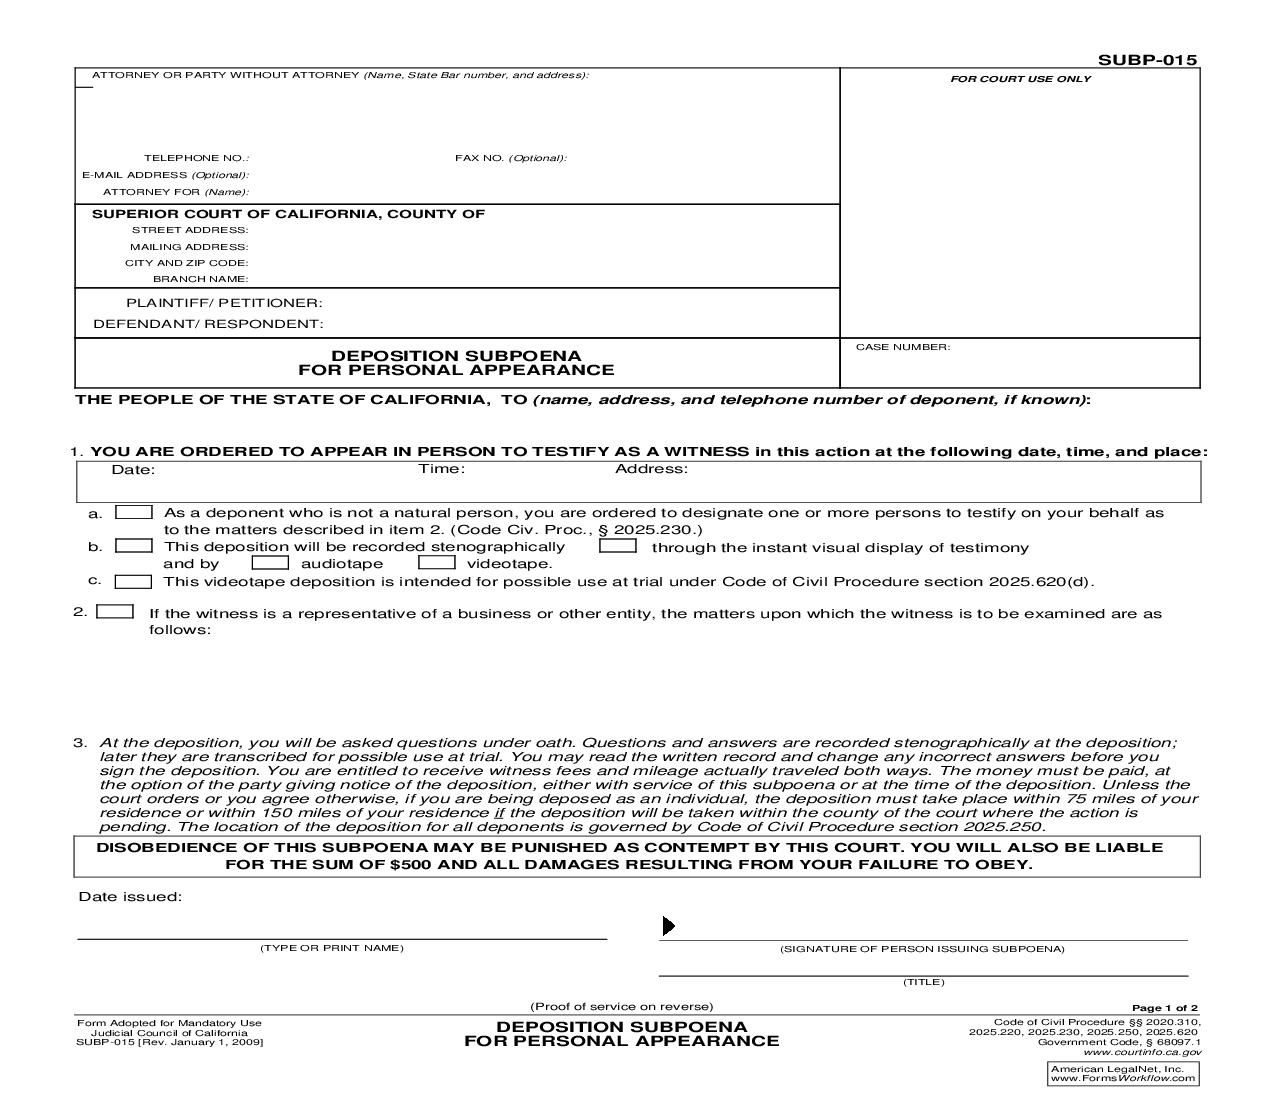 This Is A California Form That Can Be Used For Subpoena Within Judicial Council Download This Form For Free Now Californi California California State Person